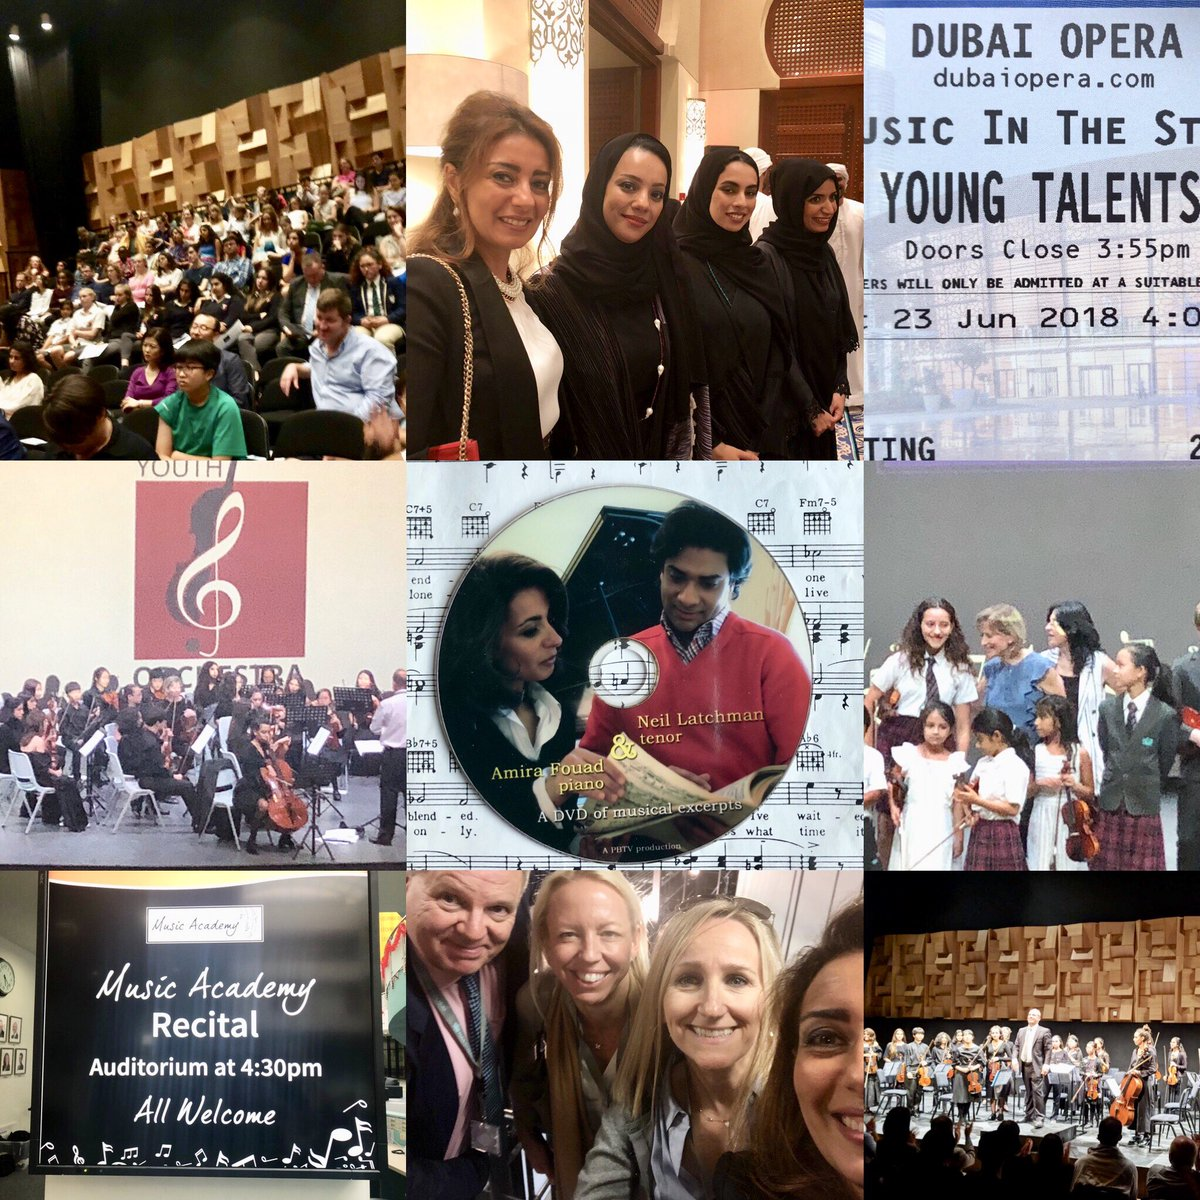 2018 Thank yous continue! This time for the youth of Dubai and across the UAE for all their dedication and enthusiasm for music and music making.  The International Youth Orchestra & many more who support our musical initiatives are to be thanked. Thank you and Bravo! https://t.co/bUgGAntc7G